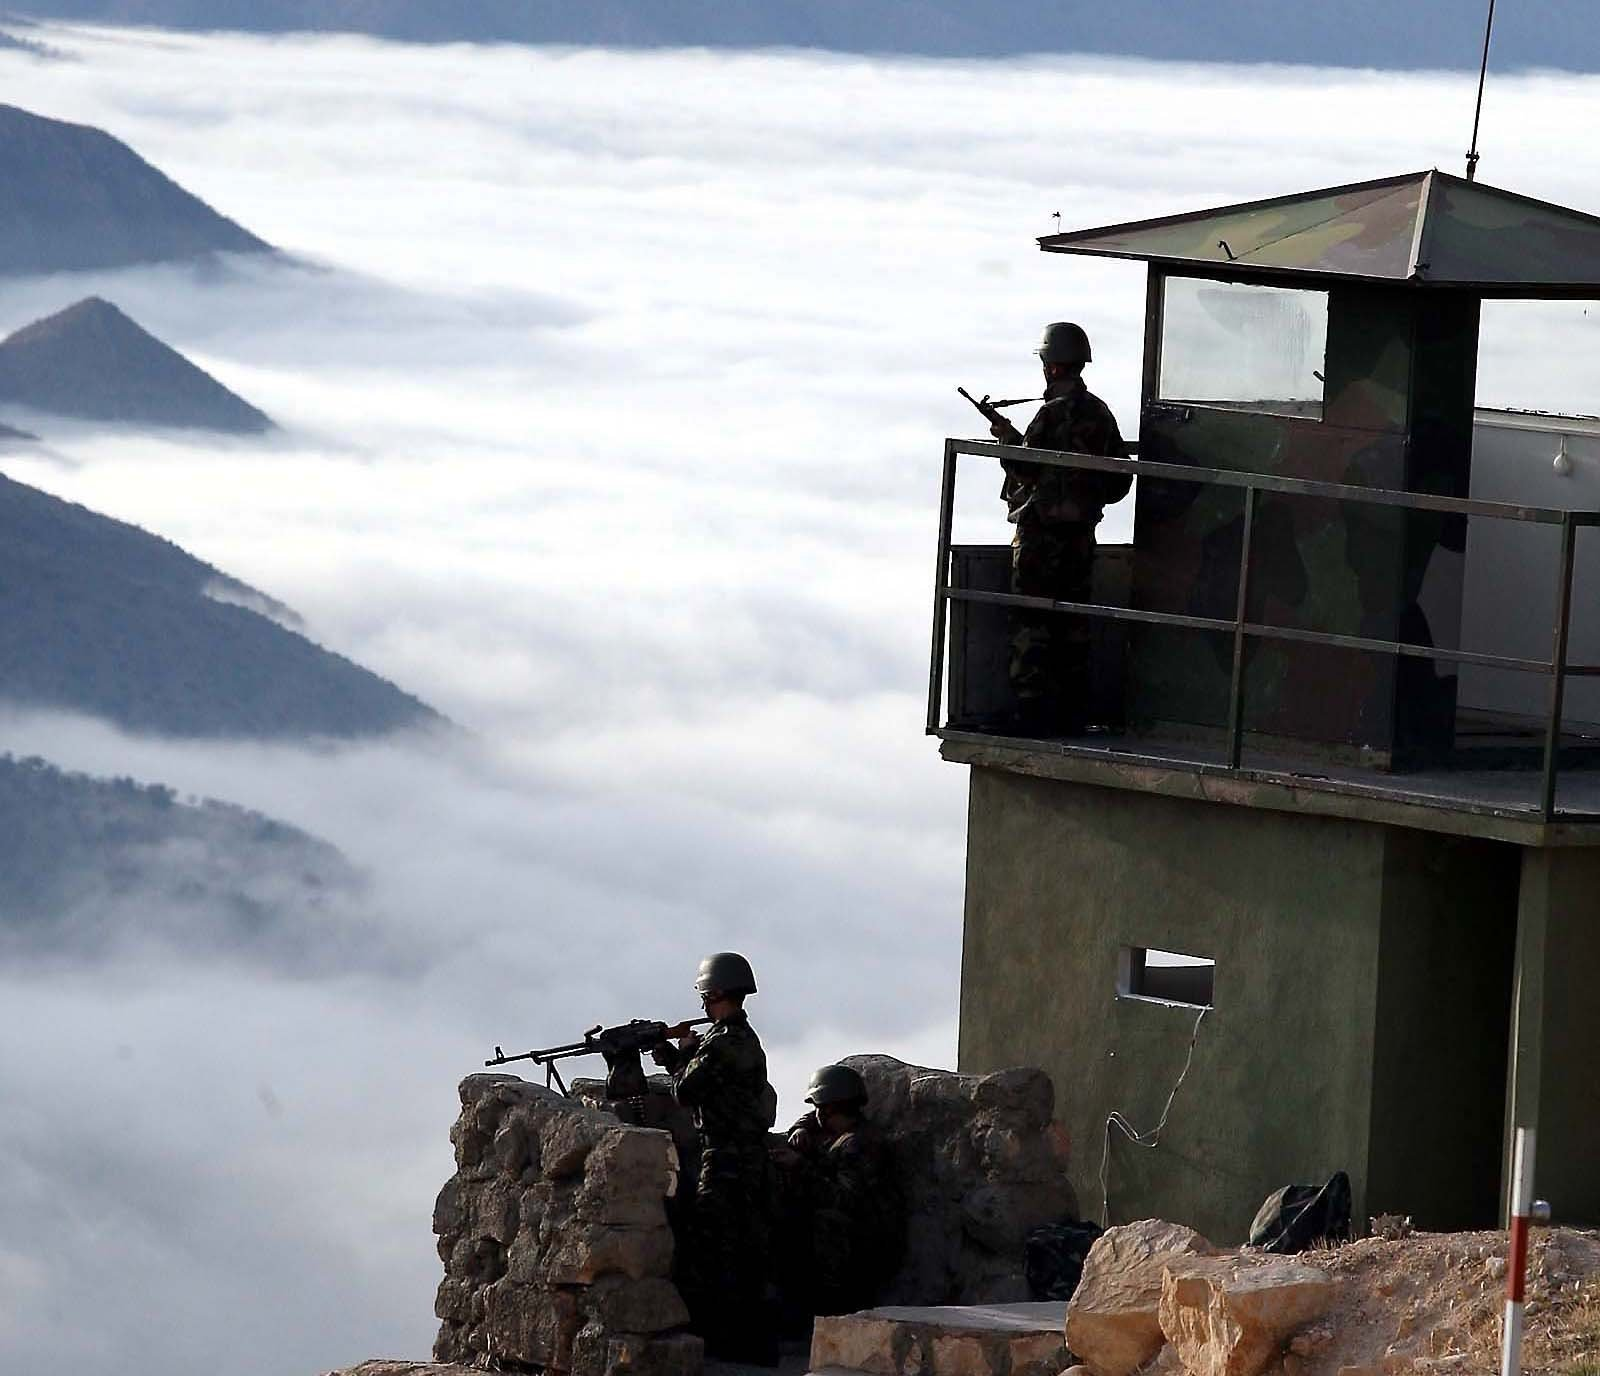 Turkish soldiers stand on guard duty near Beyirdüzü, Eruh district in Turkey's Siirt province in this undated file photo. (Sabah File Photo)